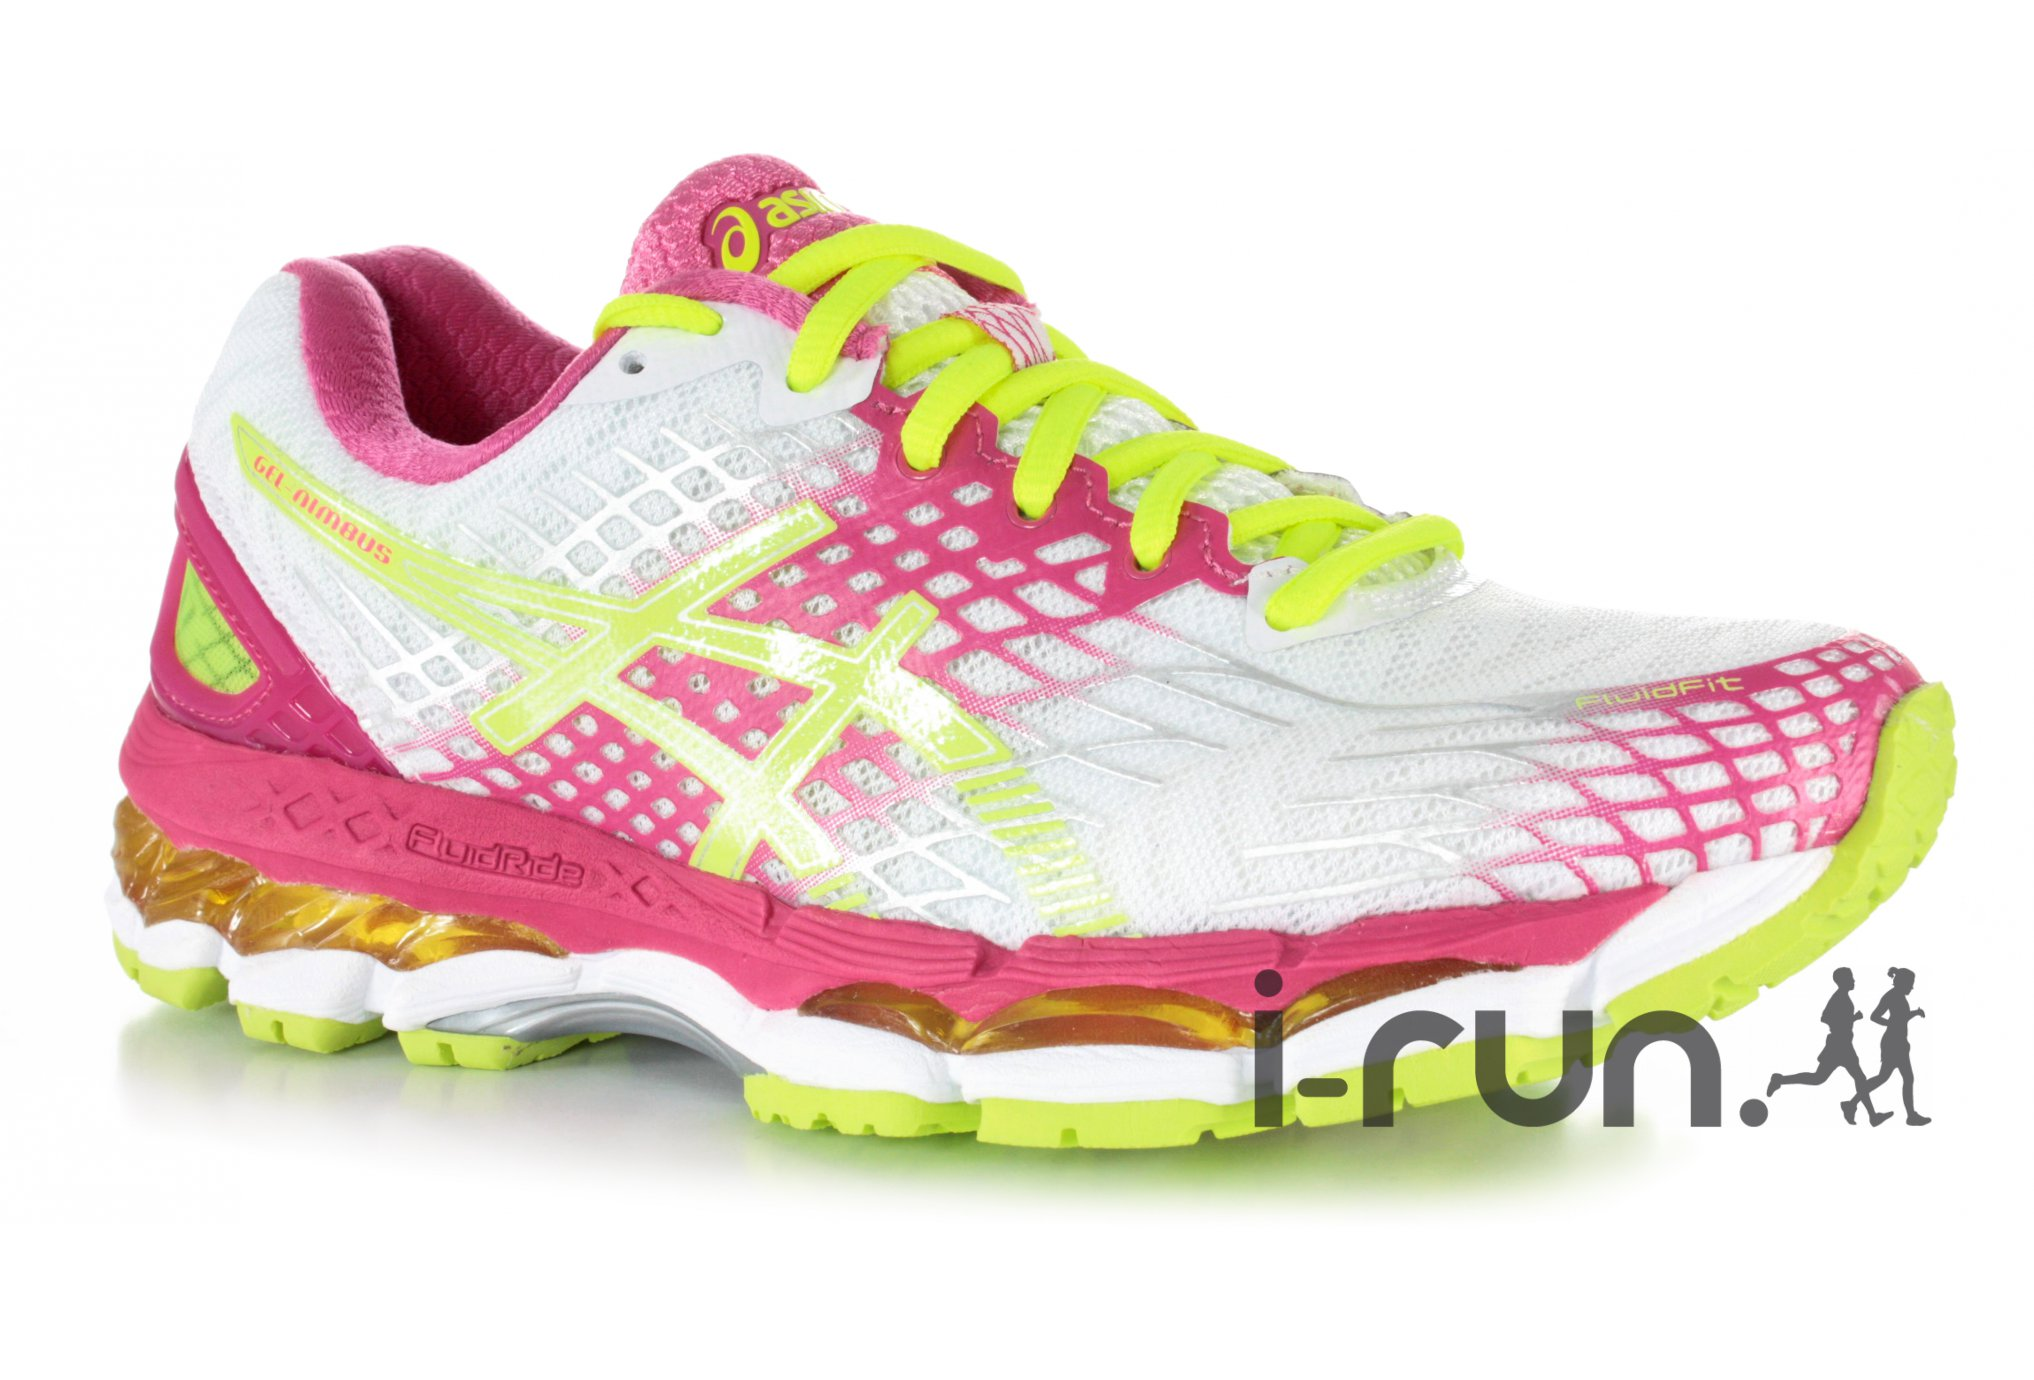 courir longtemps avec la asics nimbus 17 u run. Black Bedroom Furniture Sets. Home Design Ideas